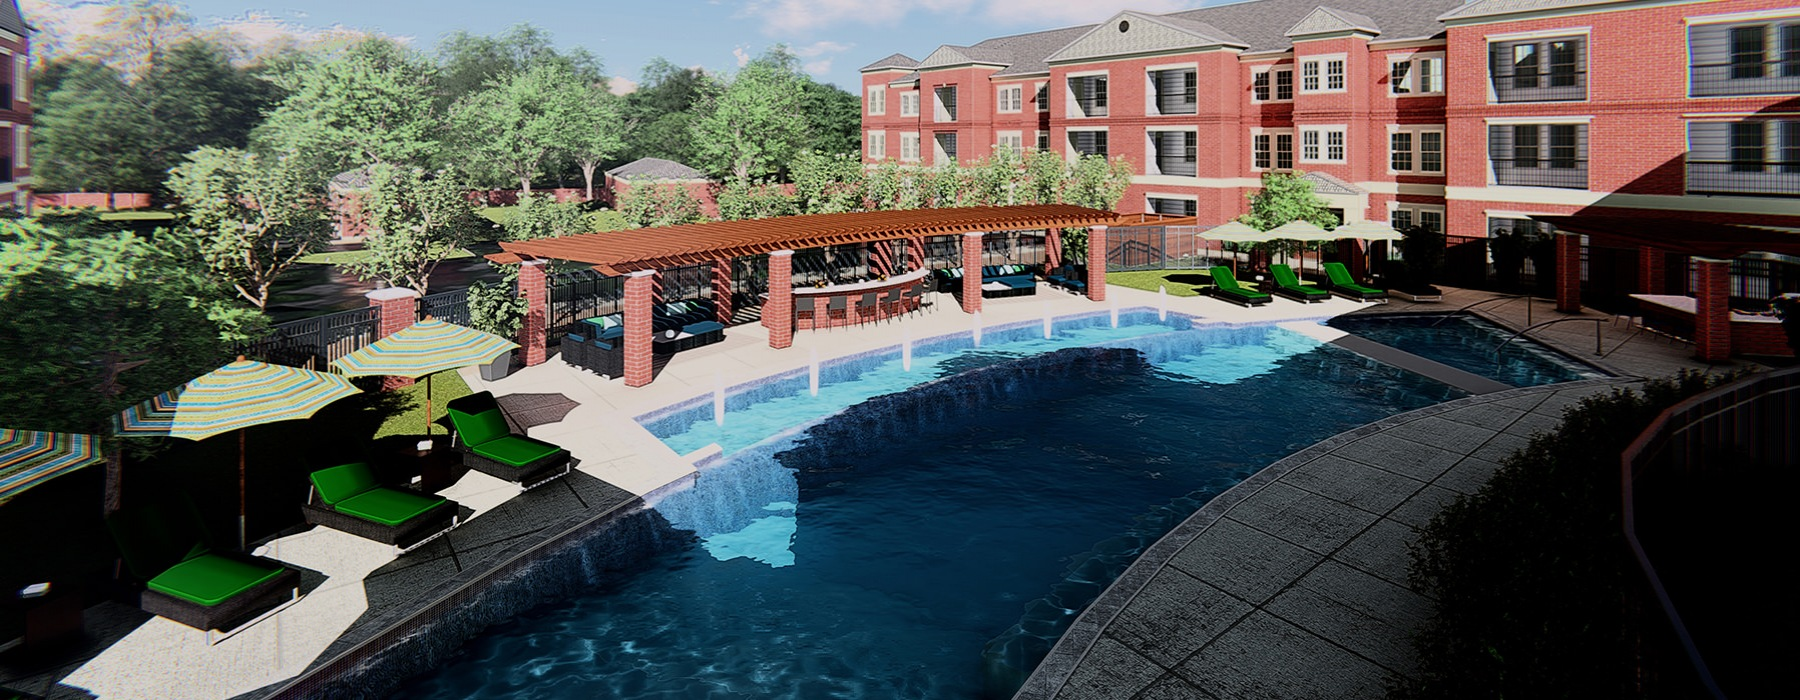 Pool features a large shaded area for grilling and dining